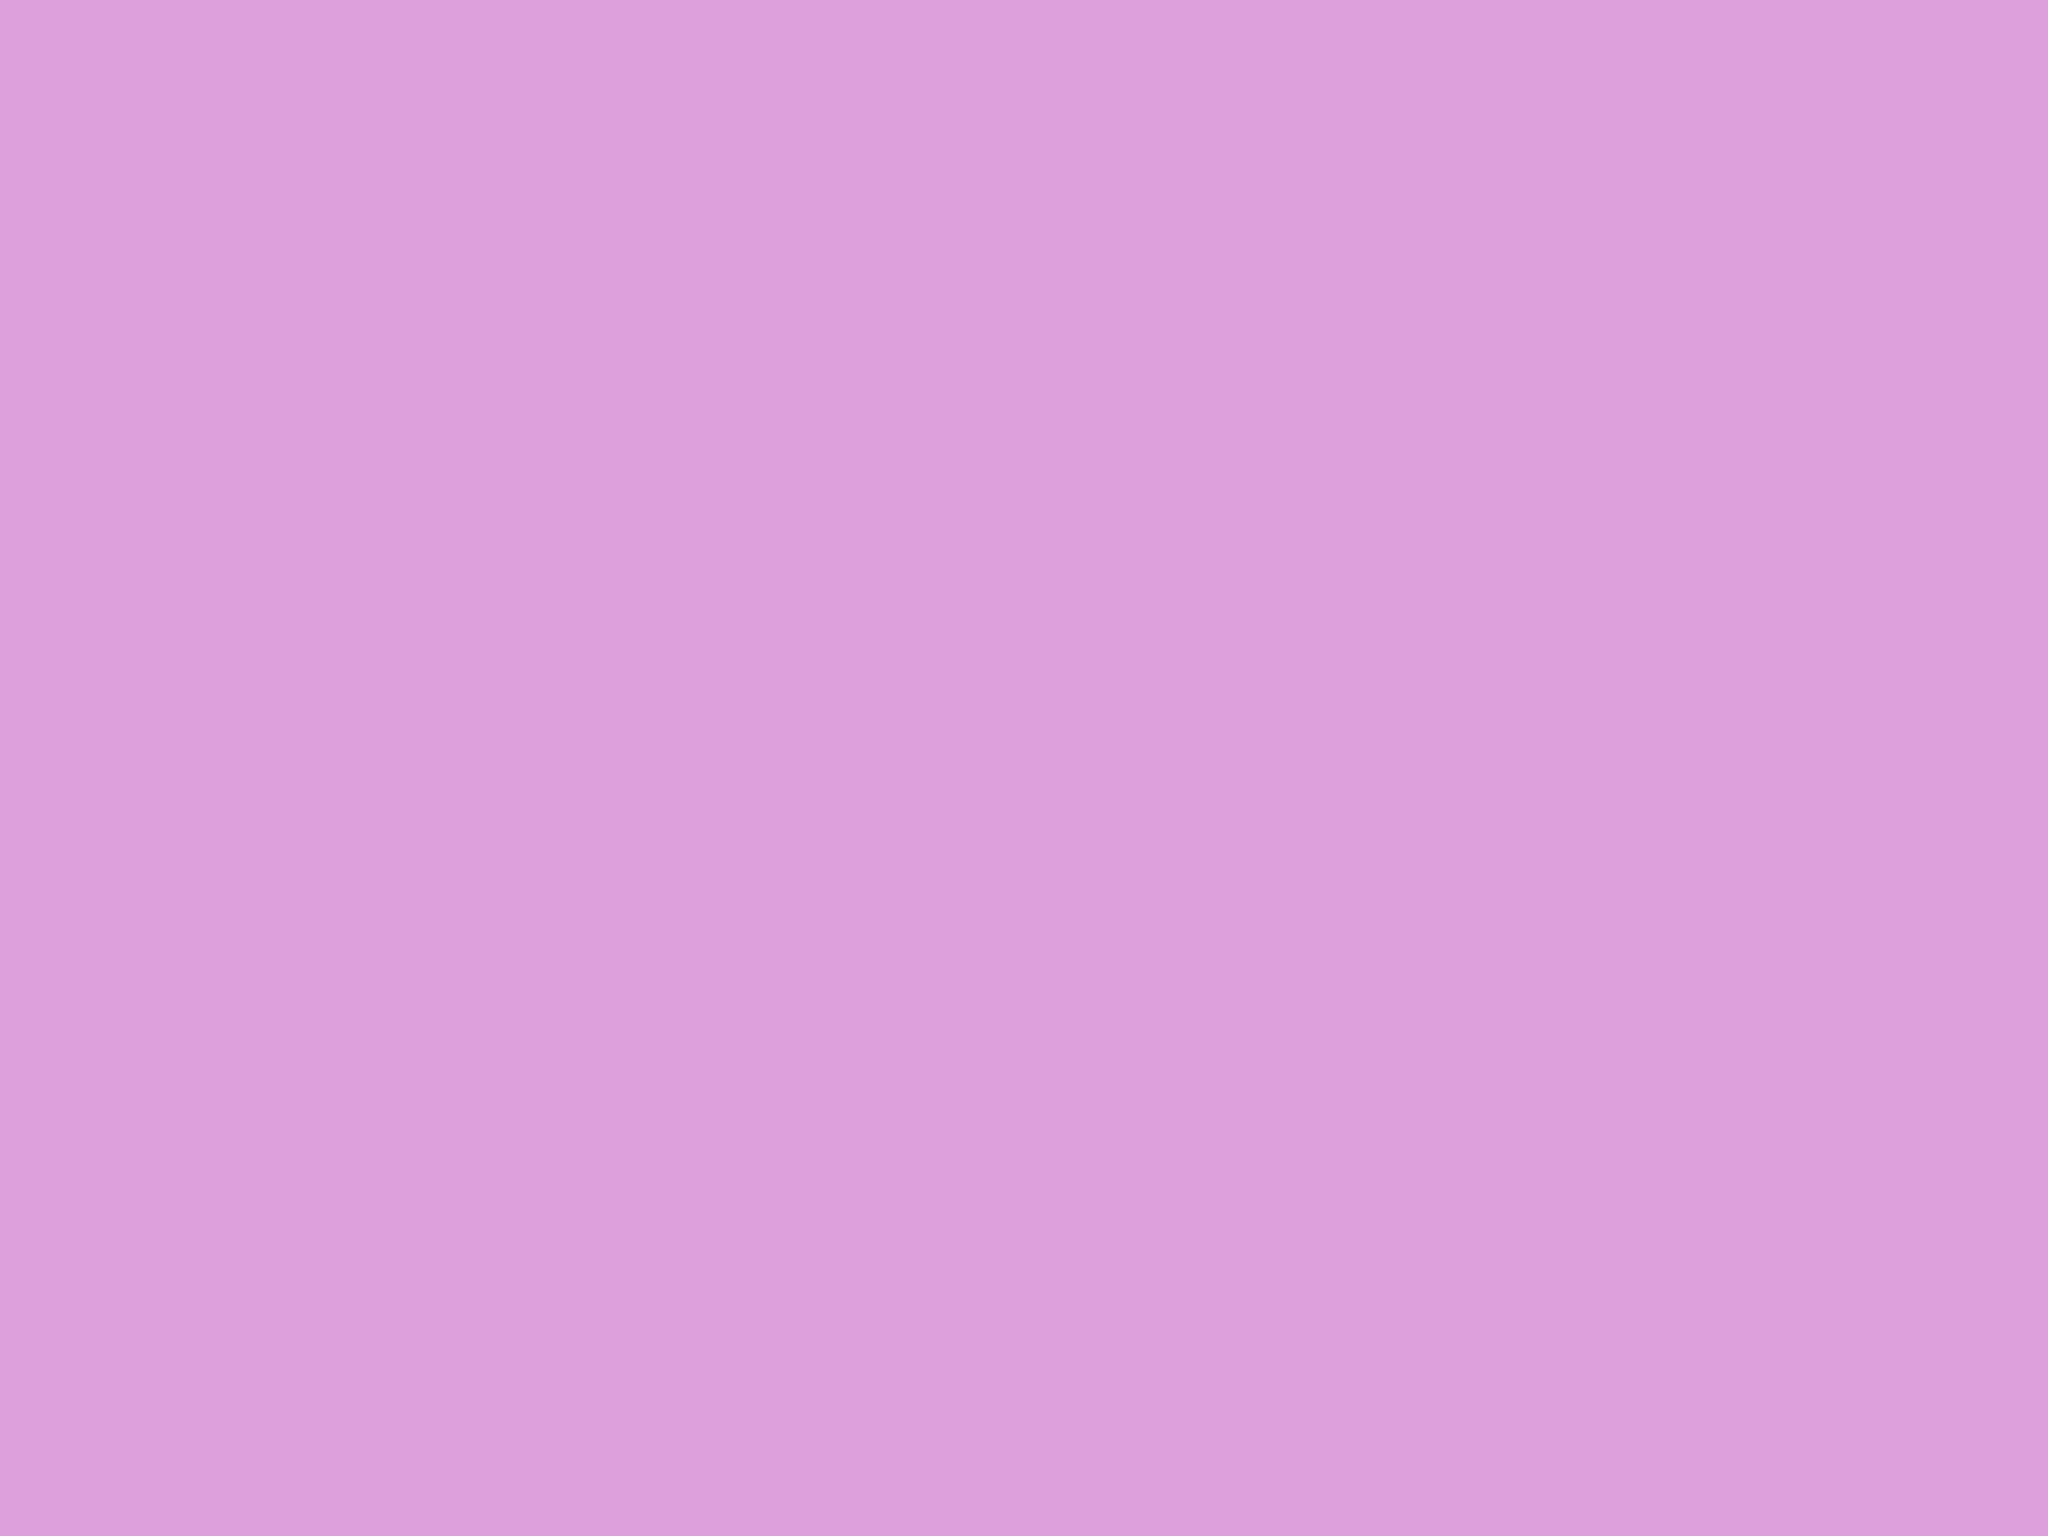 2048x1536 Pale Plum Solid Color Background 2048x1536